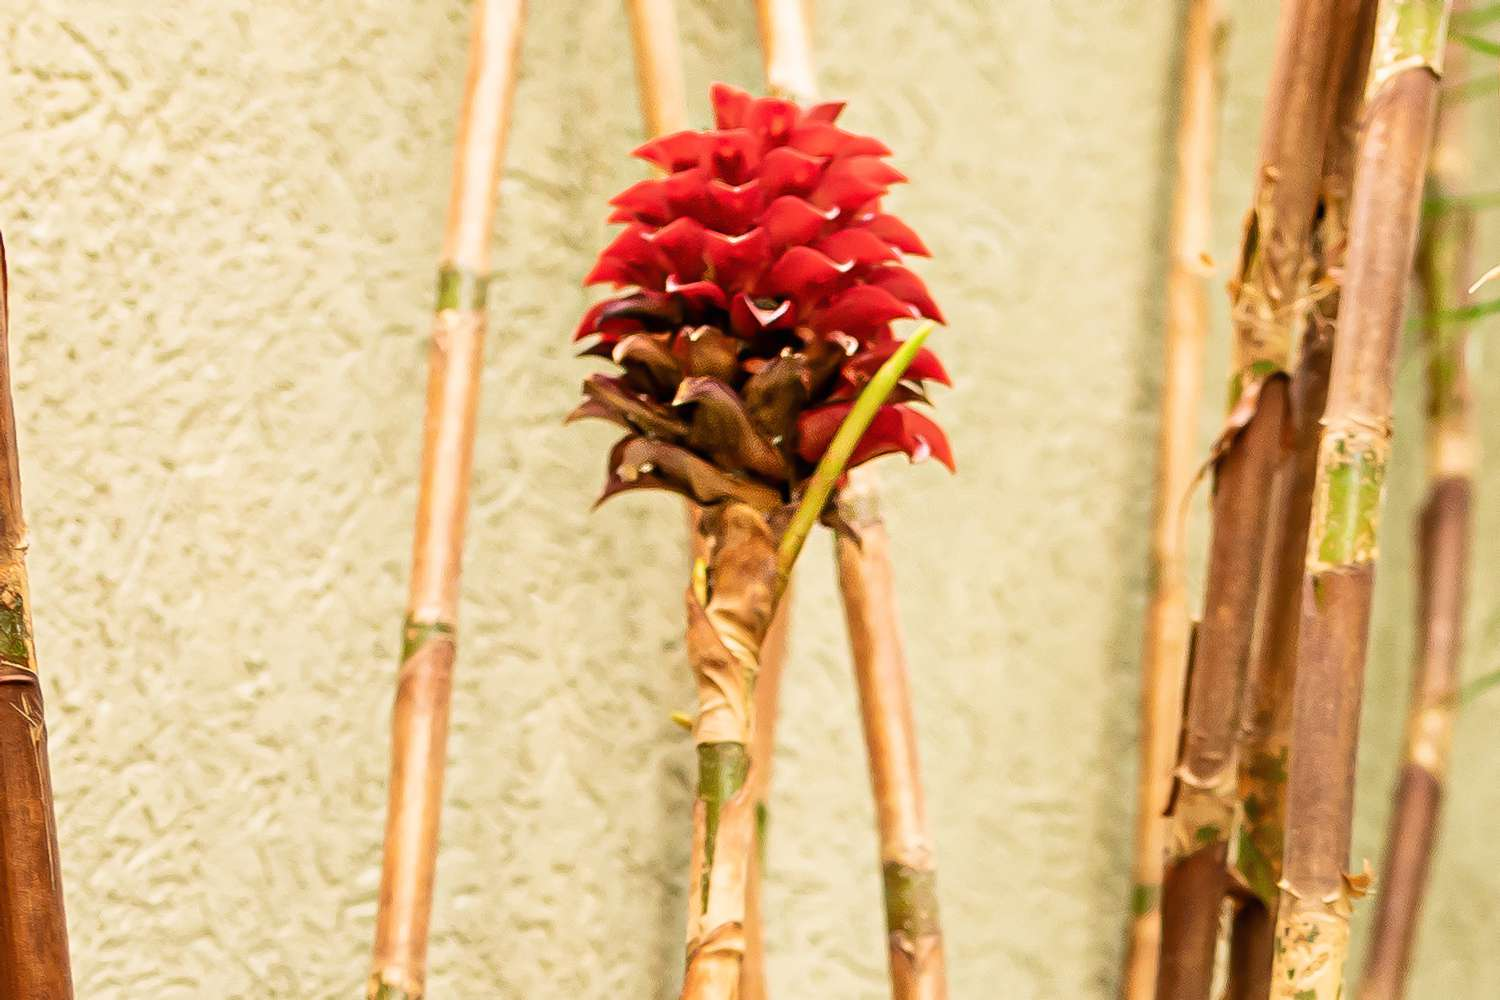 Pineapple ginger on reed-like stem with deep red flower bracts